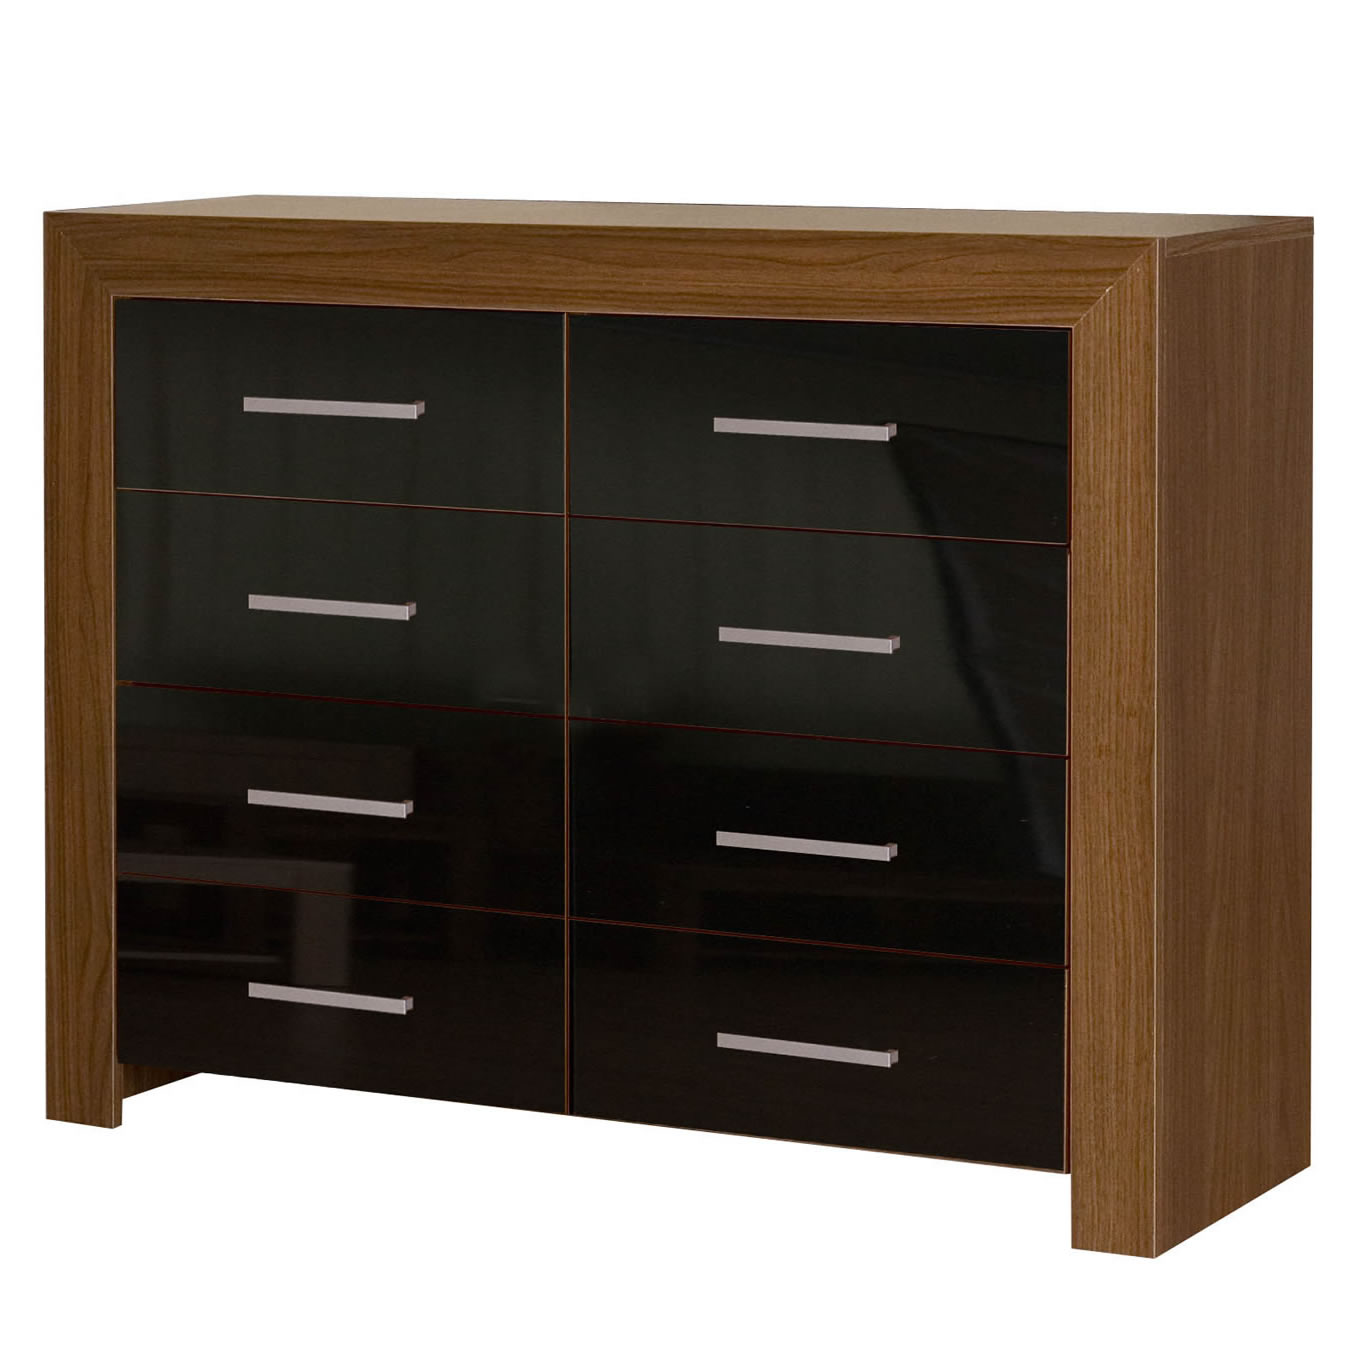 bedroom furniture black gloss and walnut photo - 5